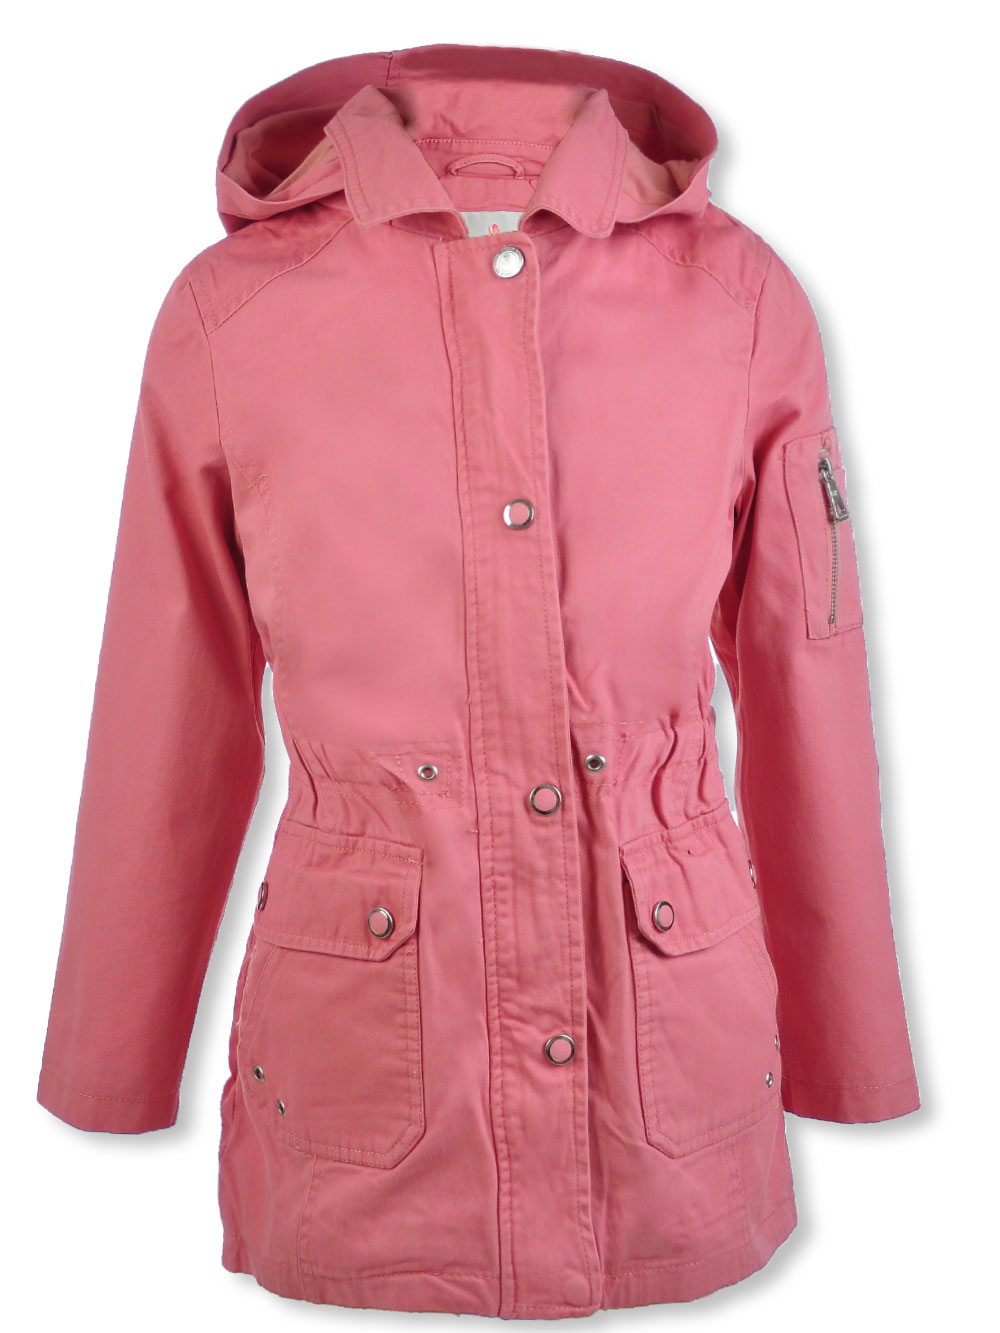 Size s/7-8 Light Jackets for Girls